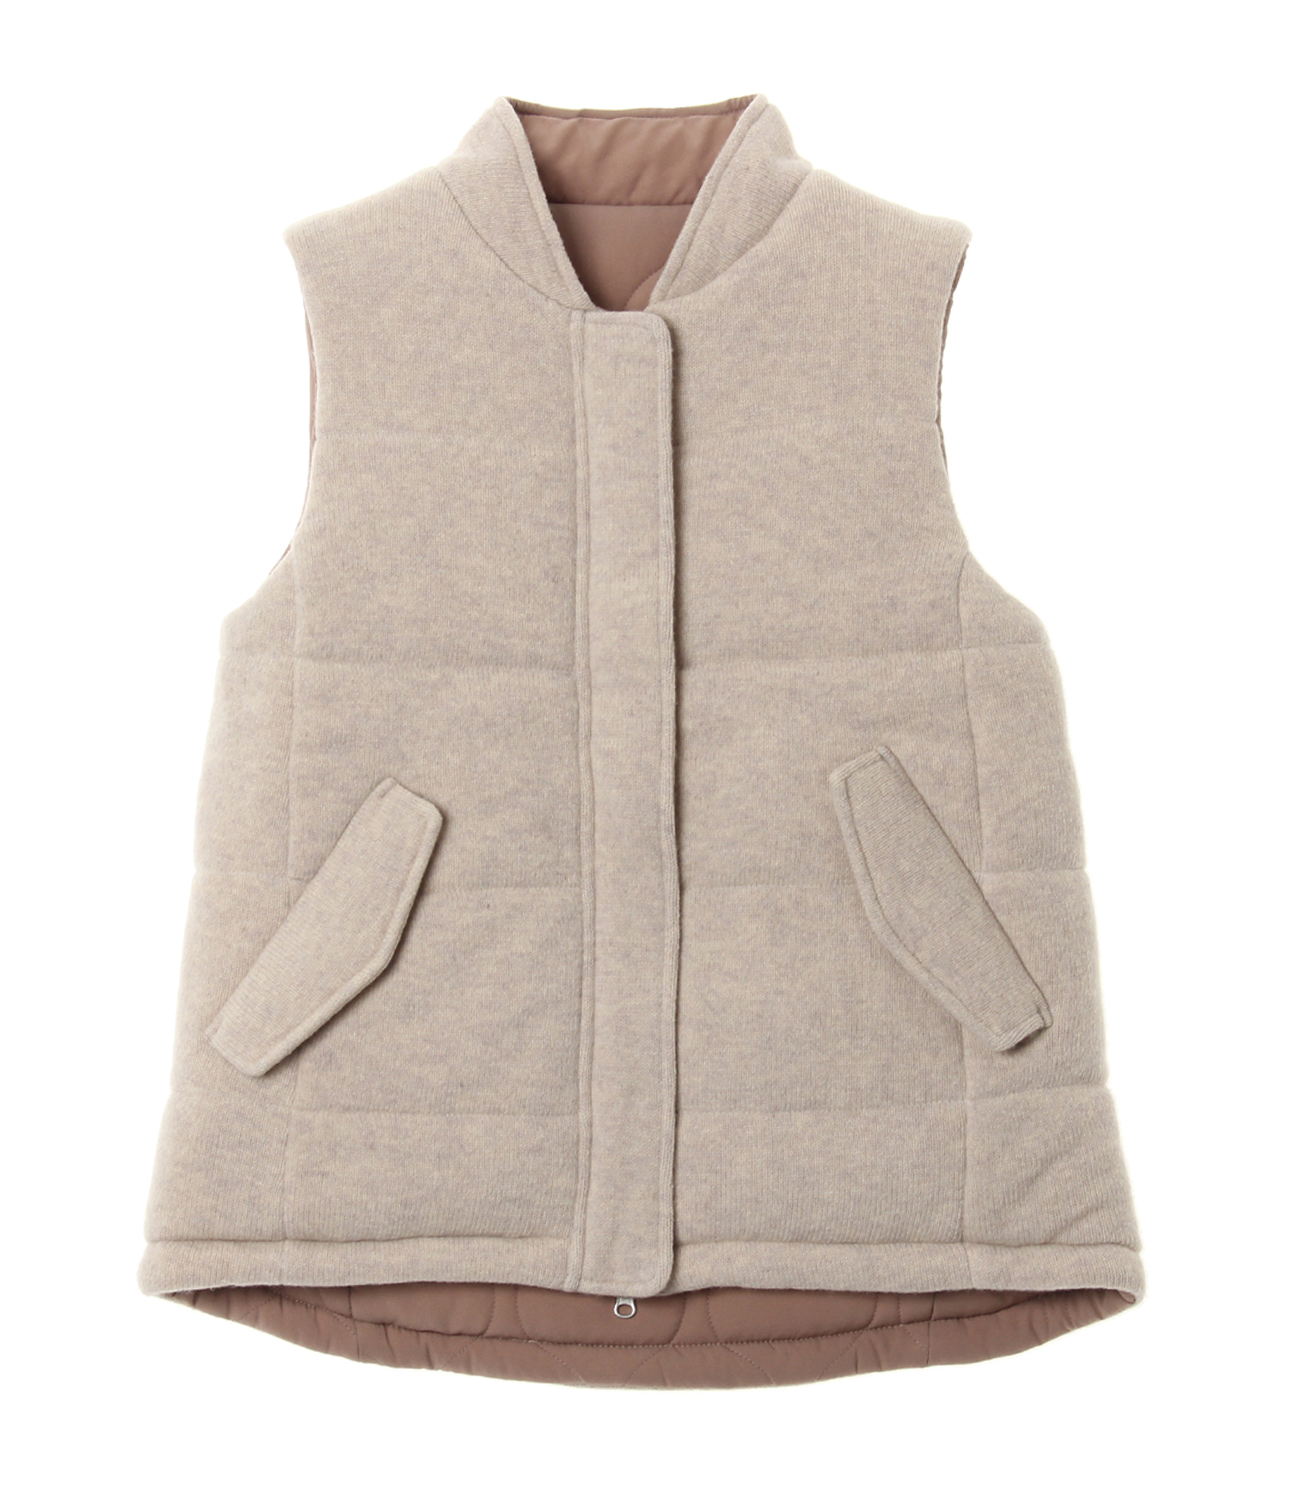 Wool outfit reversible outervest 詳細画像 beige 1